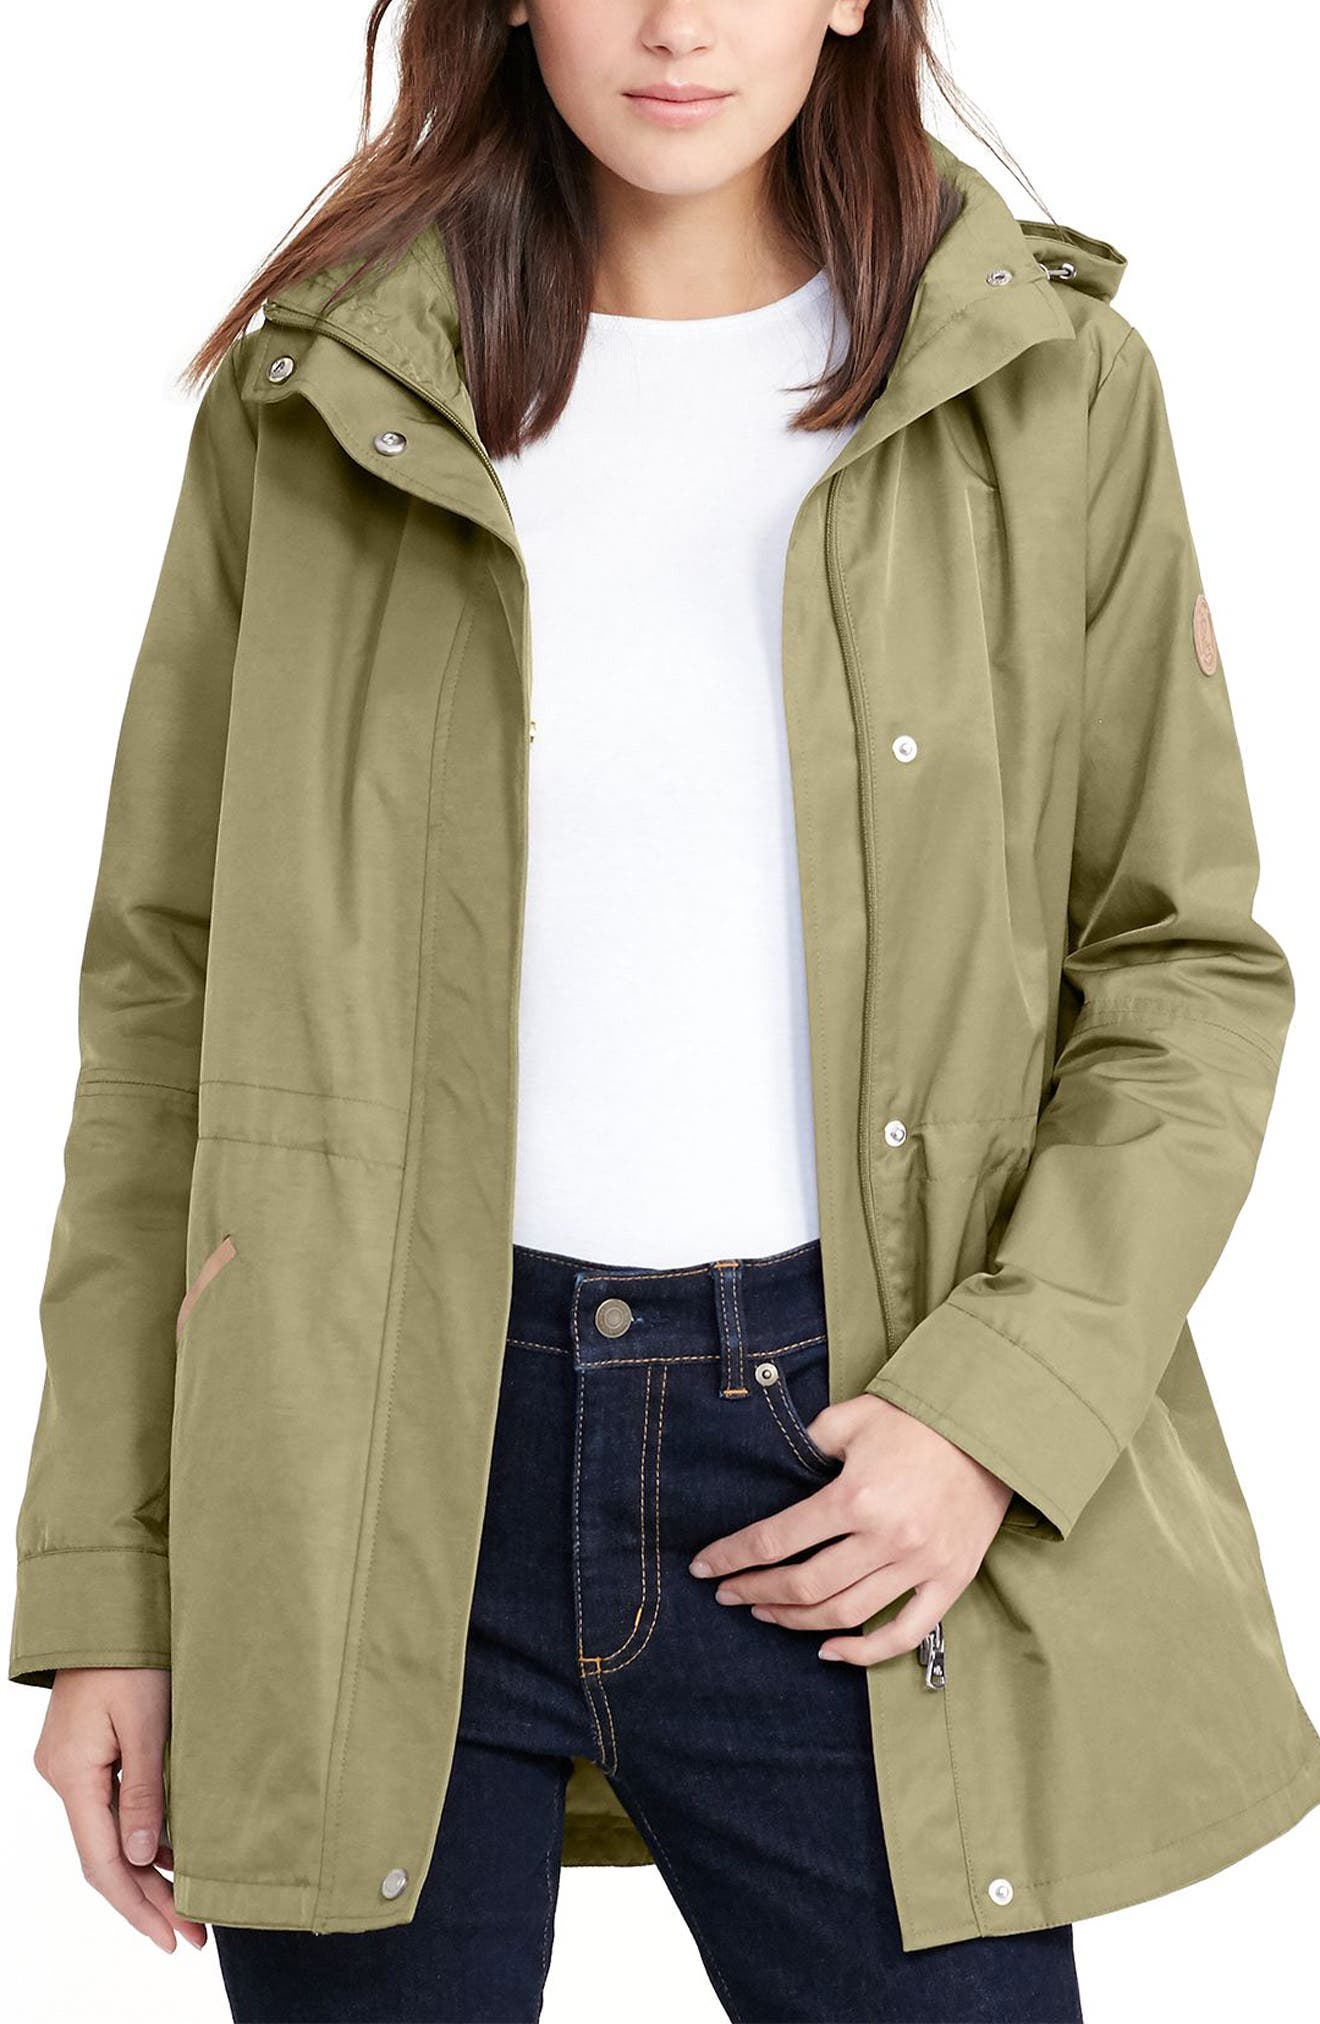 Ralph lauren green winter jacket